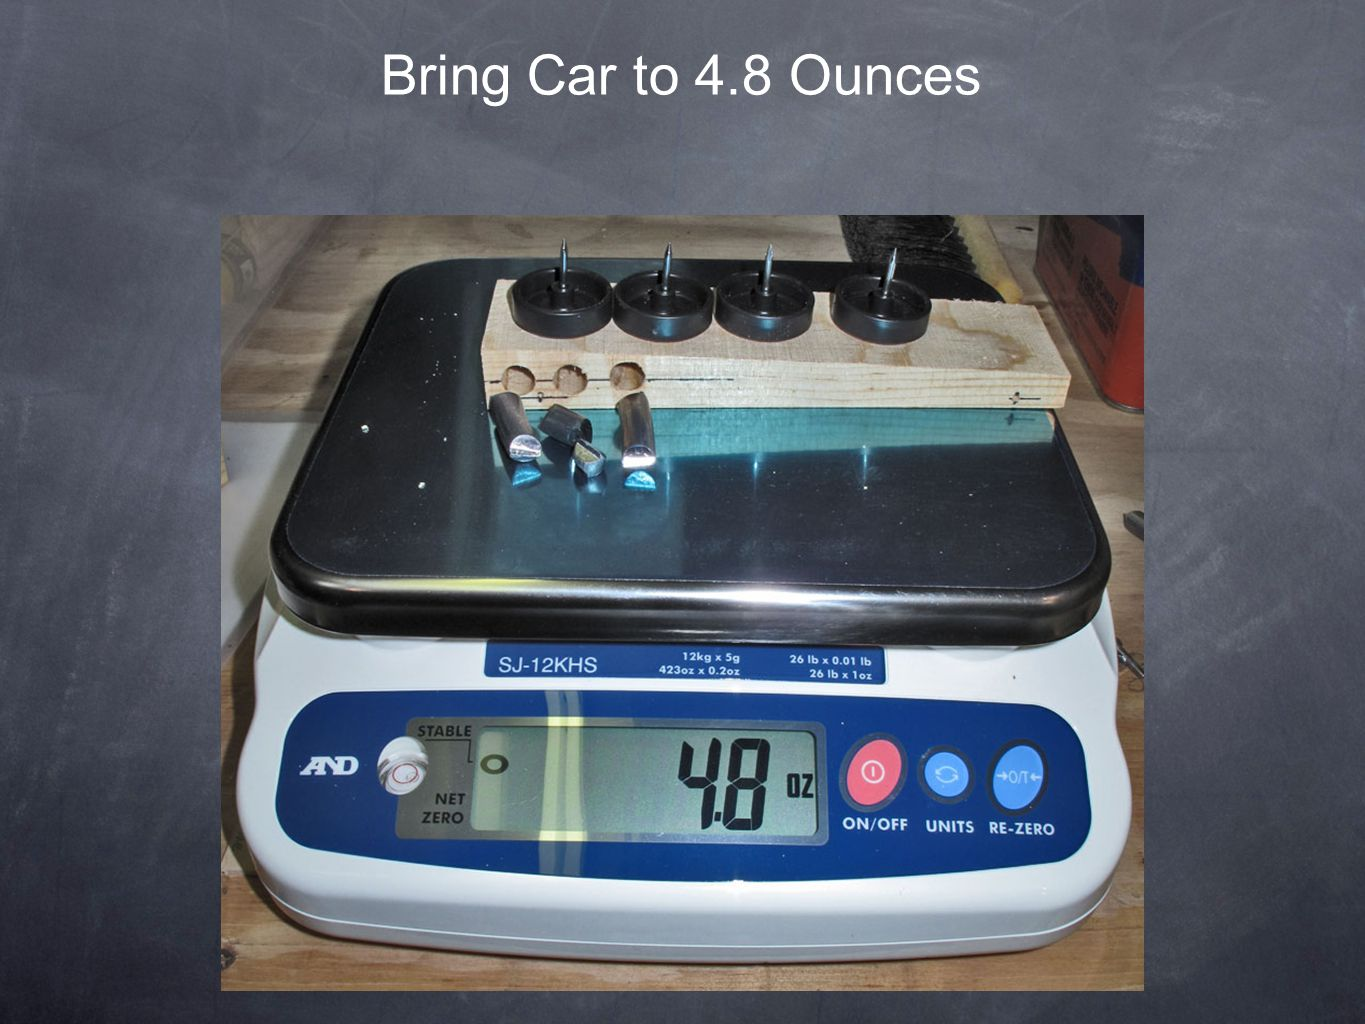 Bring Car to 4.8 Ounces